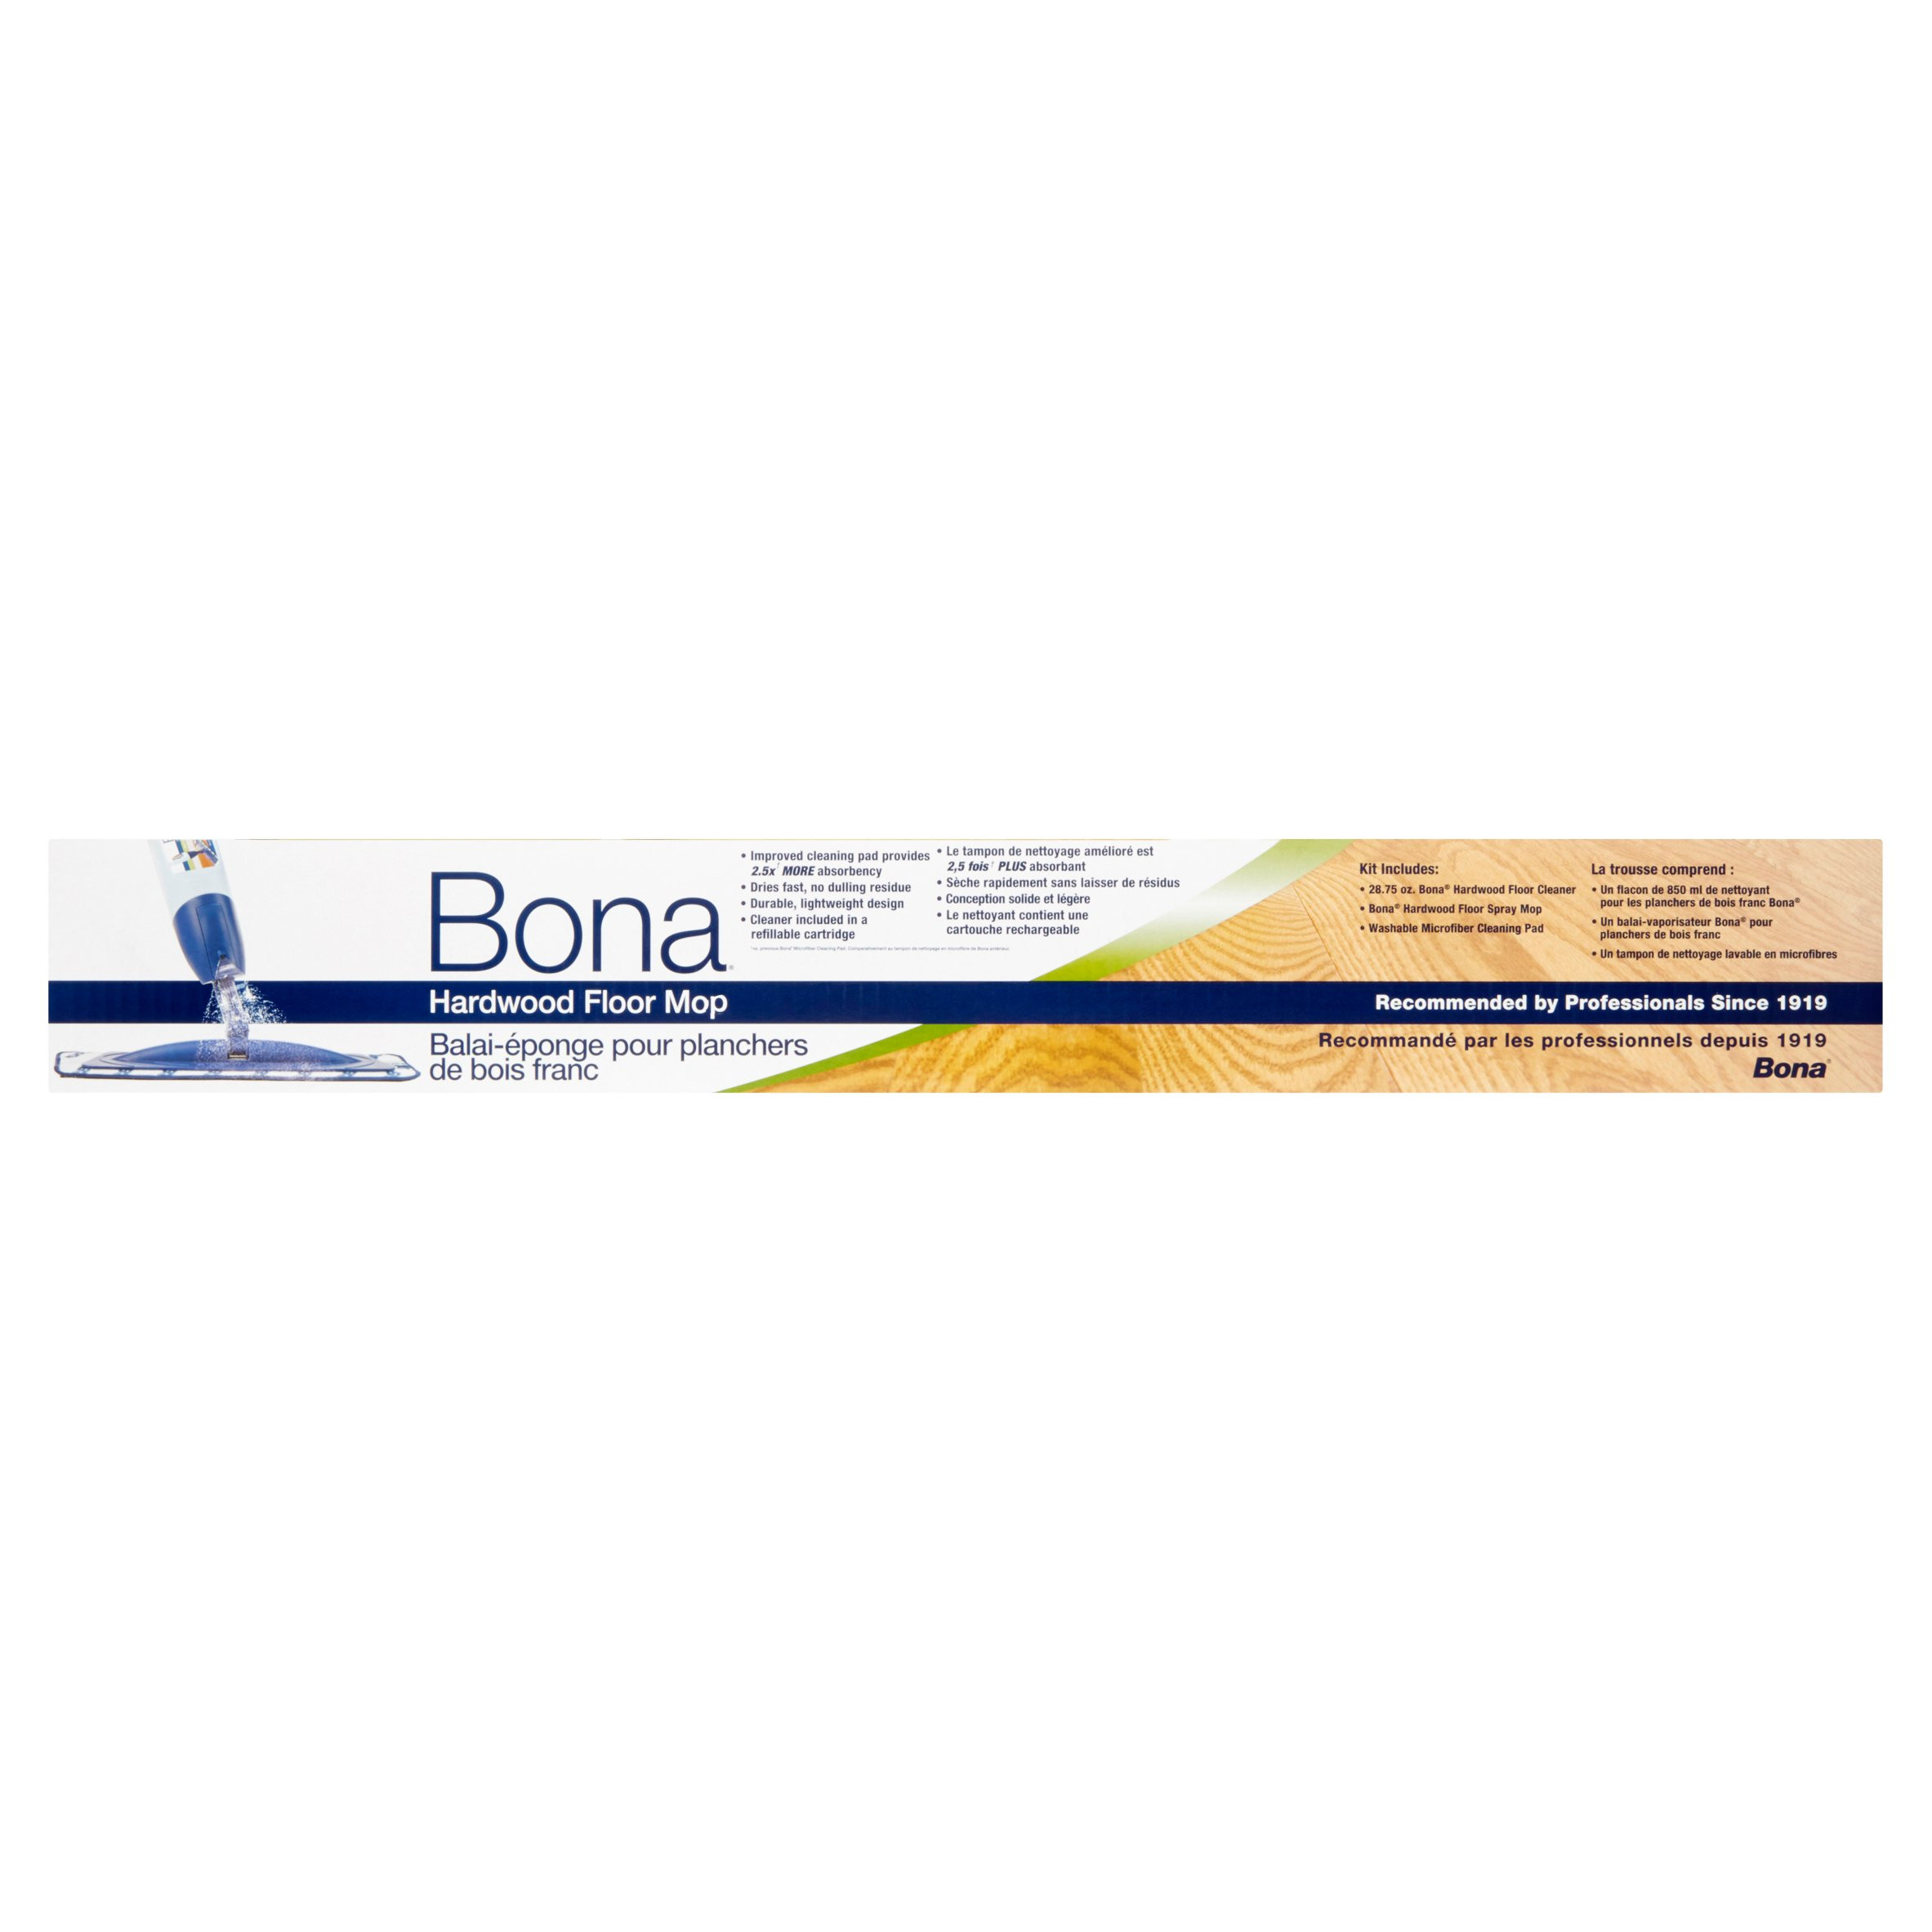 how to refill bona hardwood floor cleaner of bona hardwood floor mop kit multi purple kits amazon bona stone tile regarding bona hardwood floor mop kit multi purple kits bona hardwood floor mop kit walmart